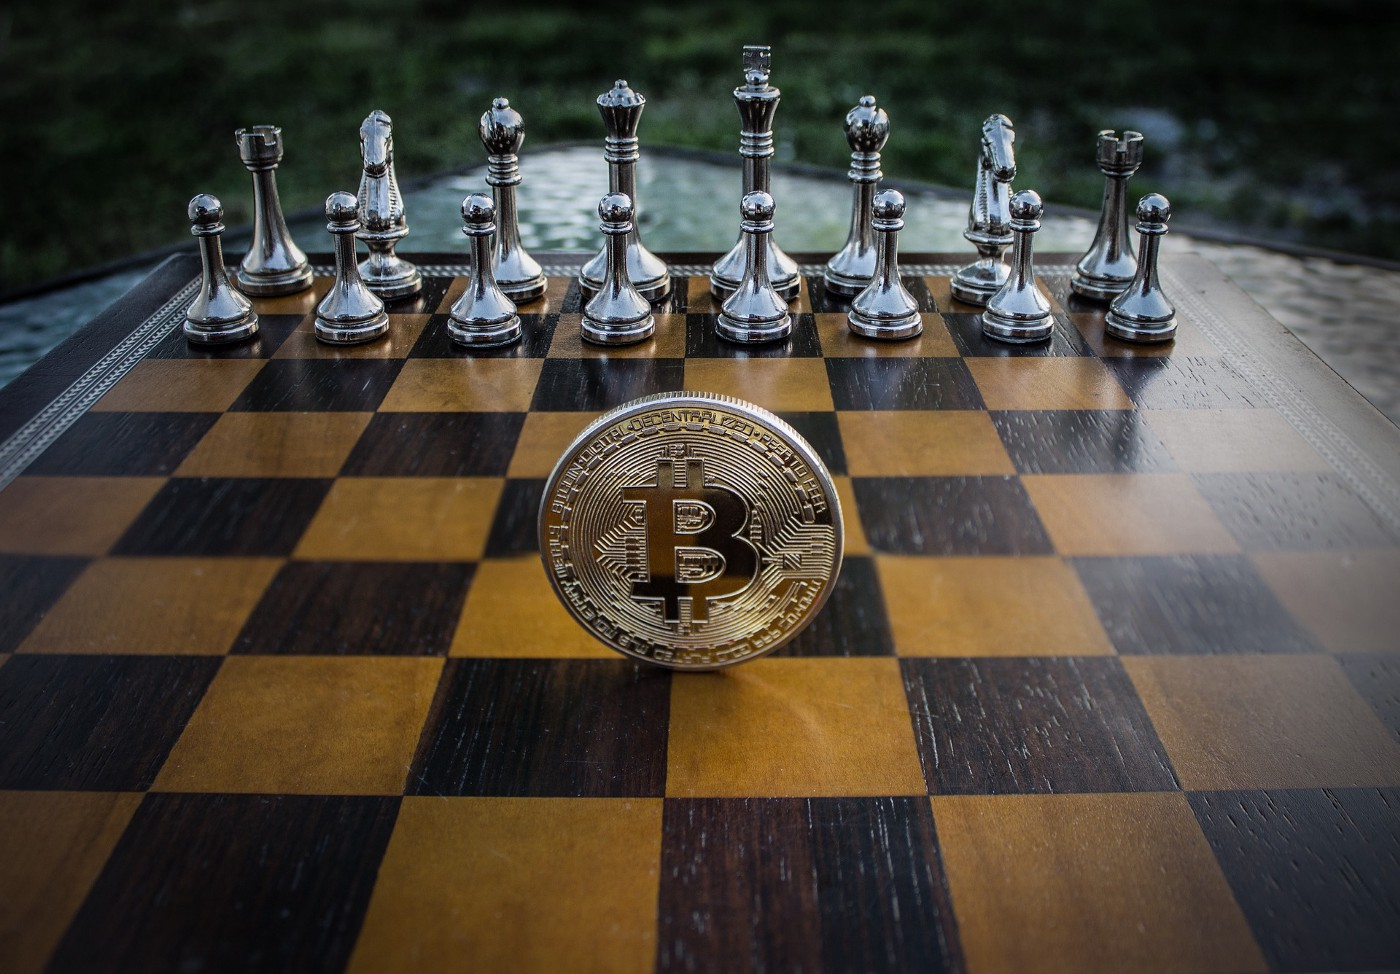 A metal coin with the Bitcoin logo standing on its edge in the middle of a chess board